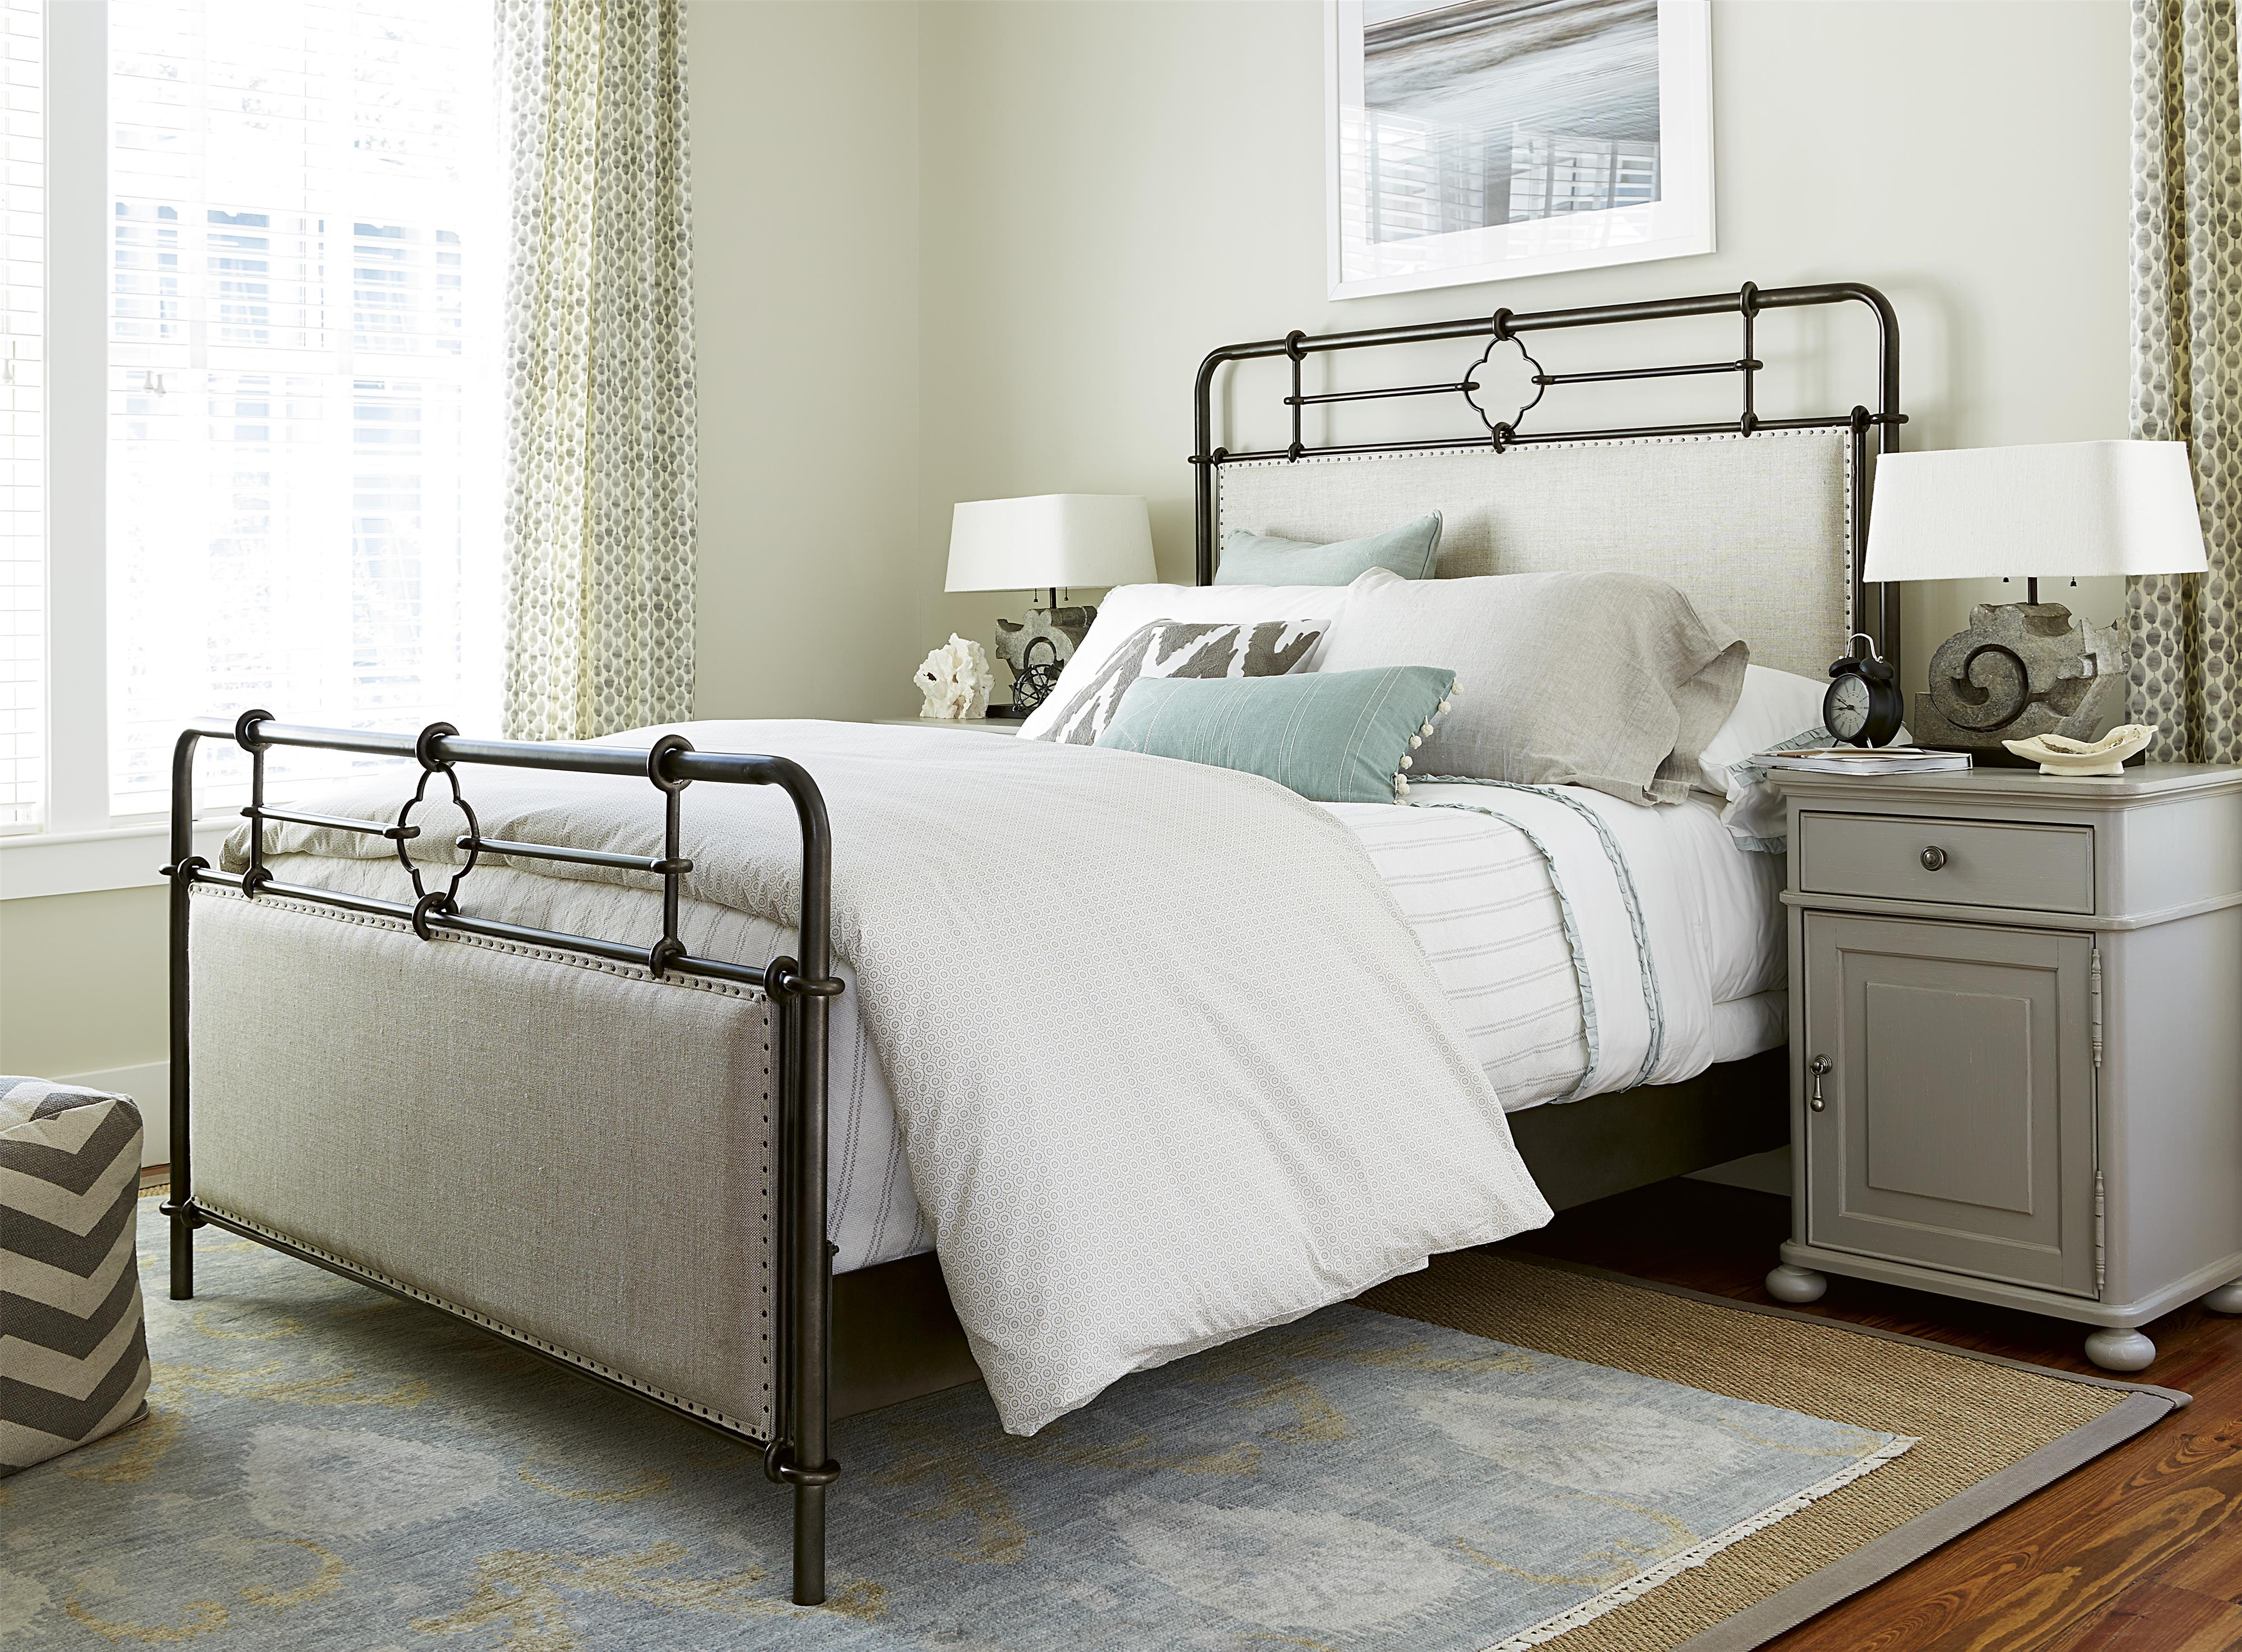 Paula Deen by Universal Dogwood Queen Bedroom Group - Item Number: 599 Q Bedroom Group 5